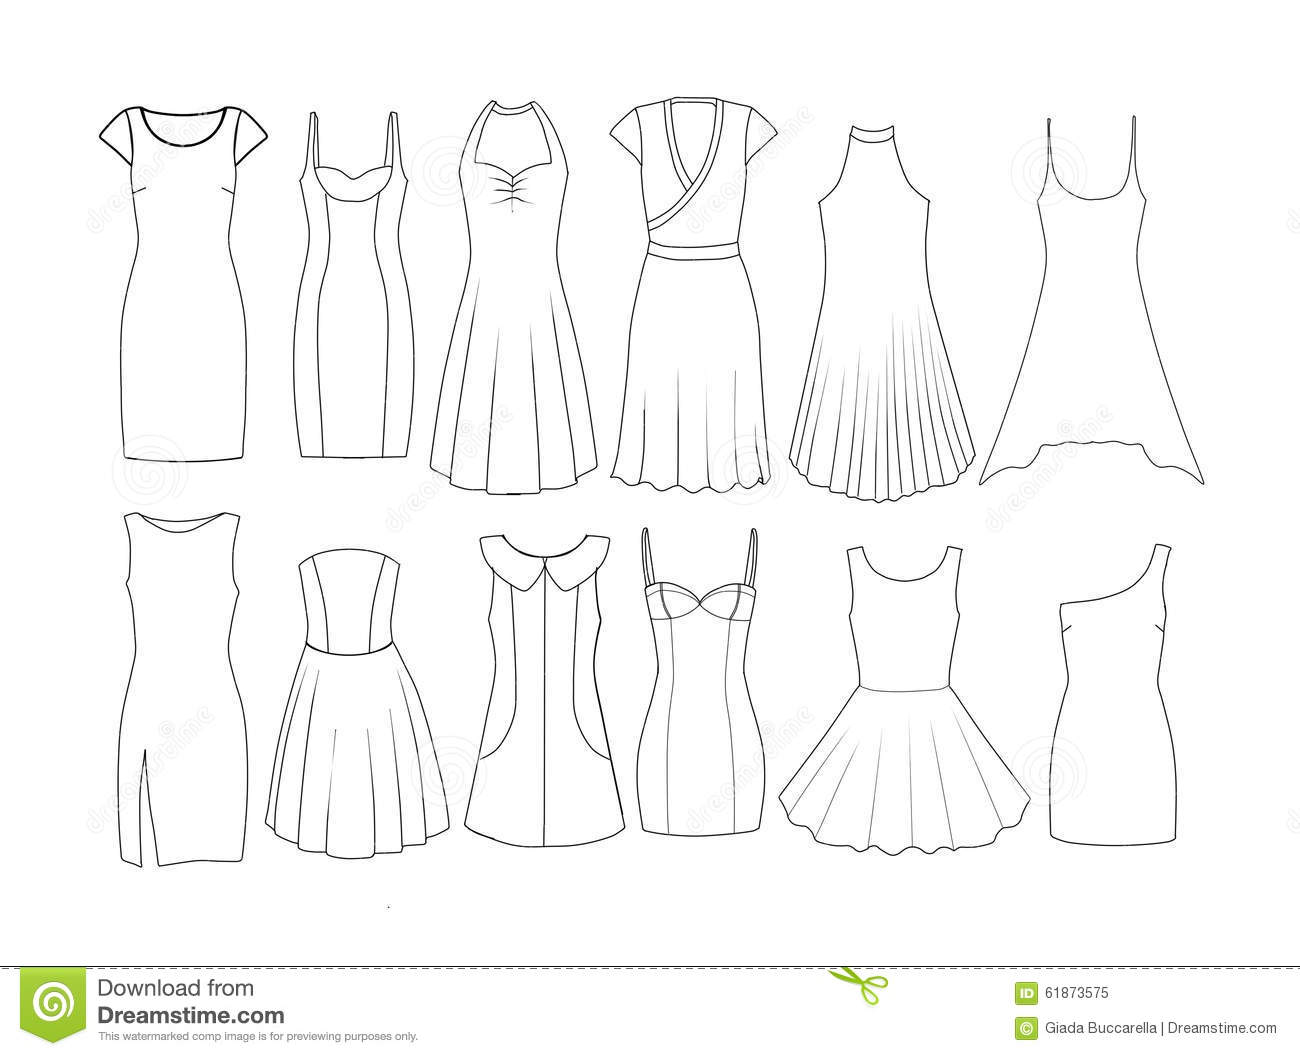 fashion designing templates free download - set of fashion flat templates sketches woman dresses